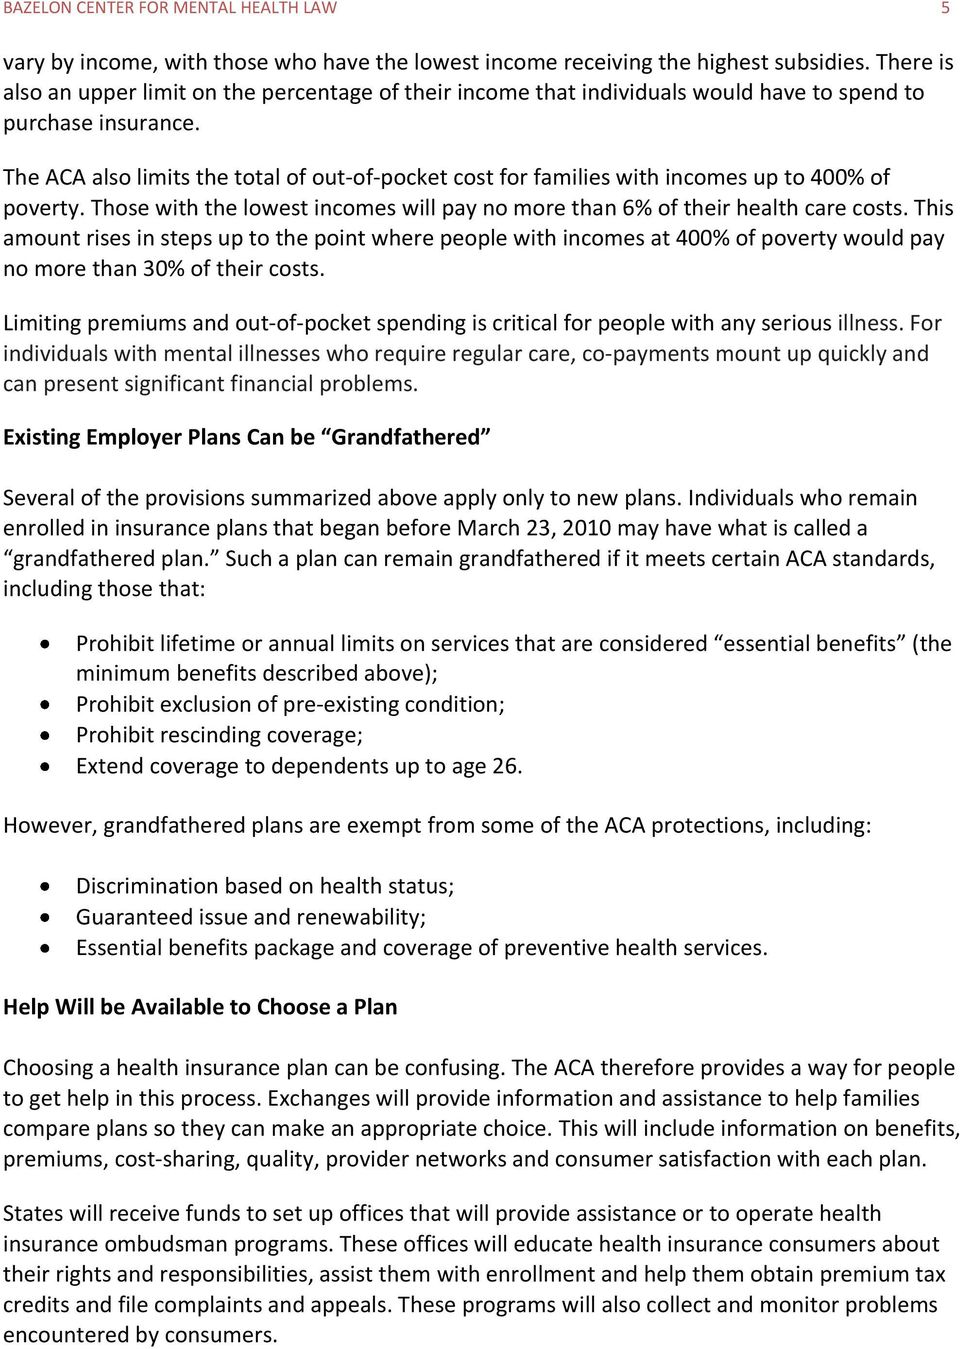 The ACA also limits the total of out-of-pocket cost for families with incomes up to 400% of poverty. Those with the lowest incomes will pay no more than 6% of their health care costs.